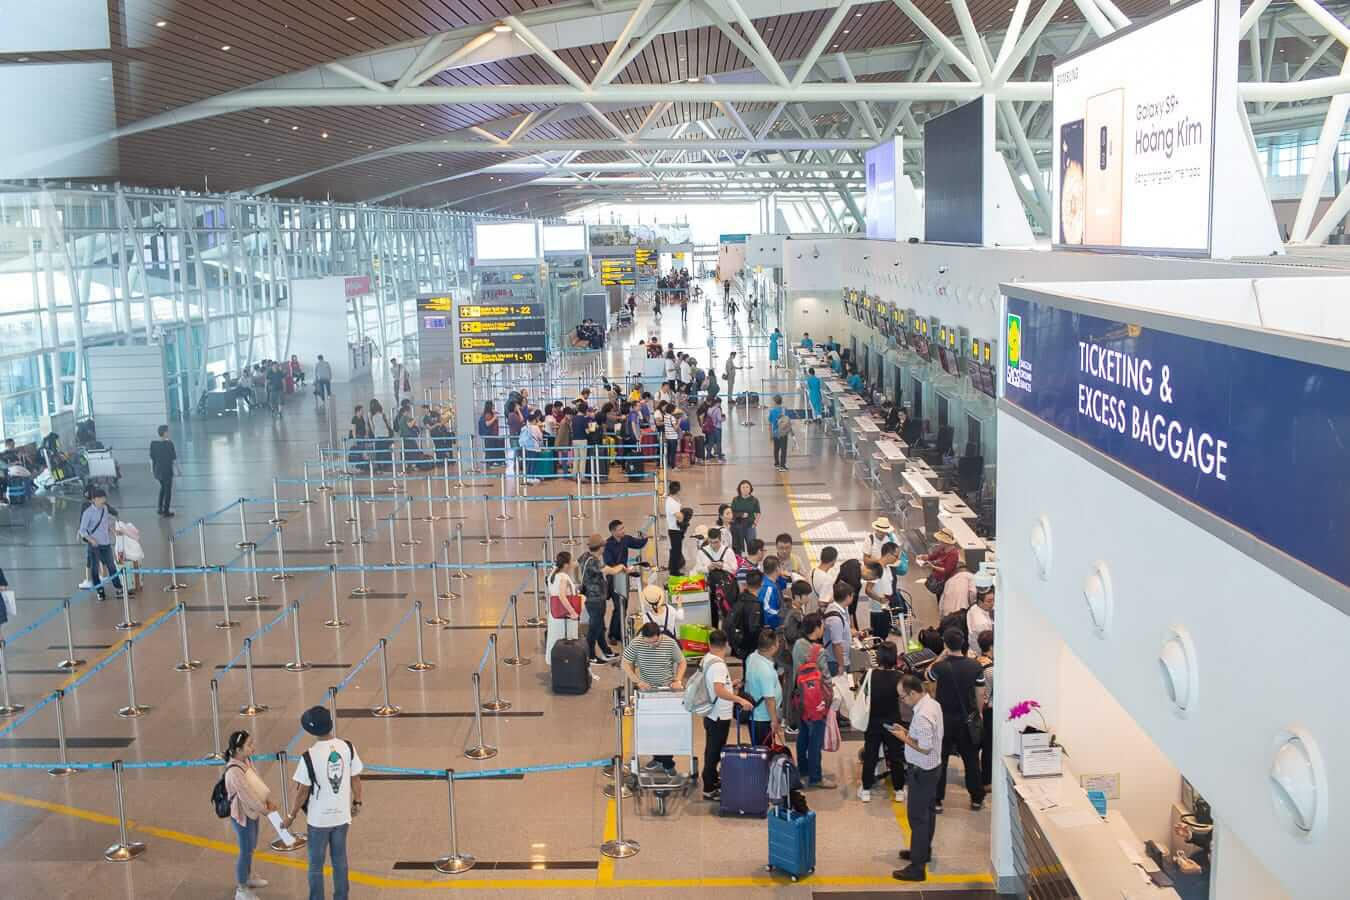 Da Nang Airport interior